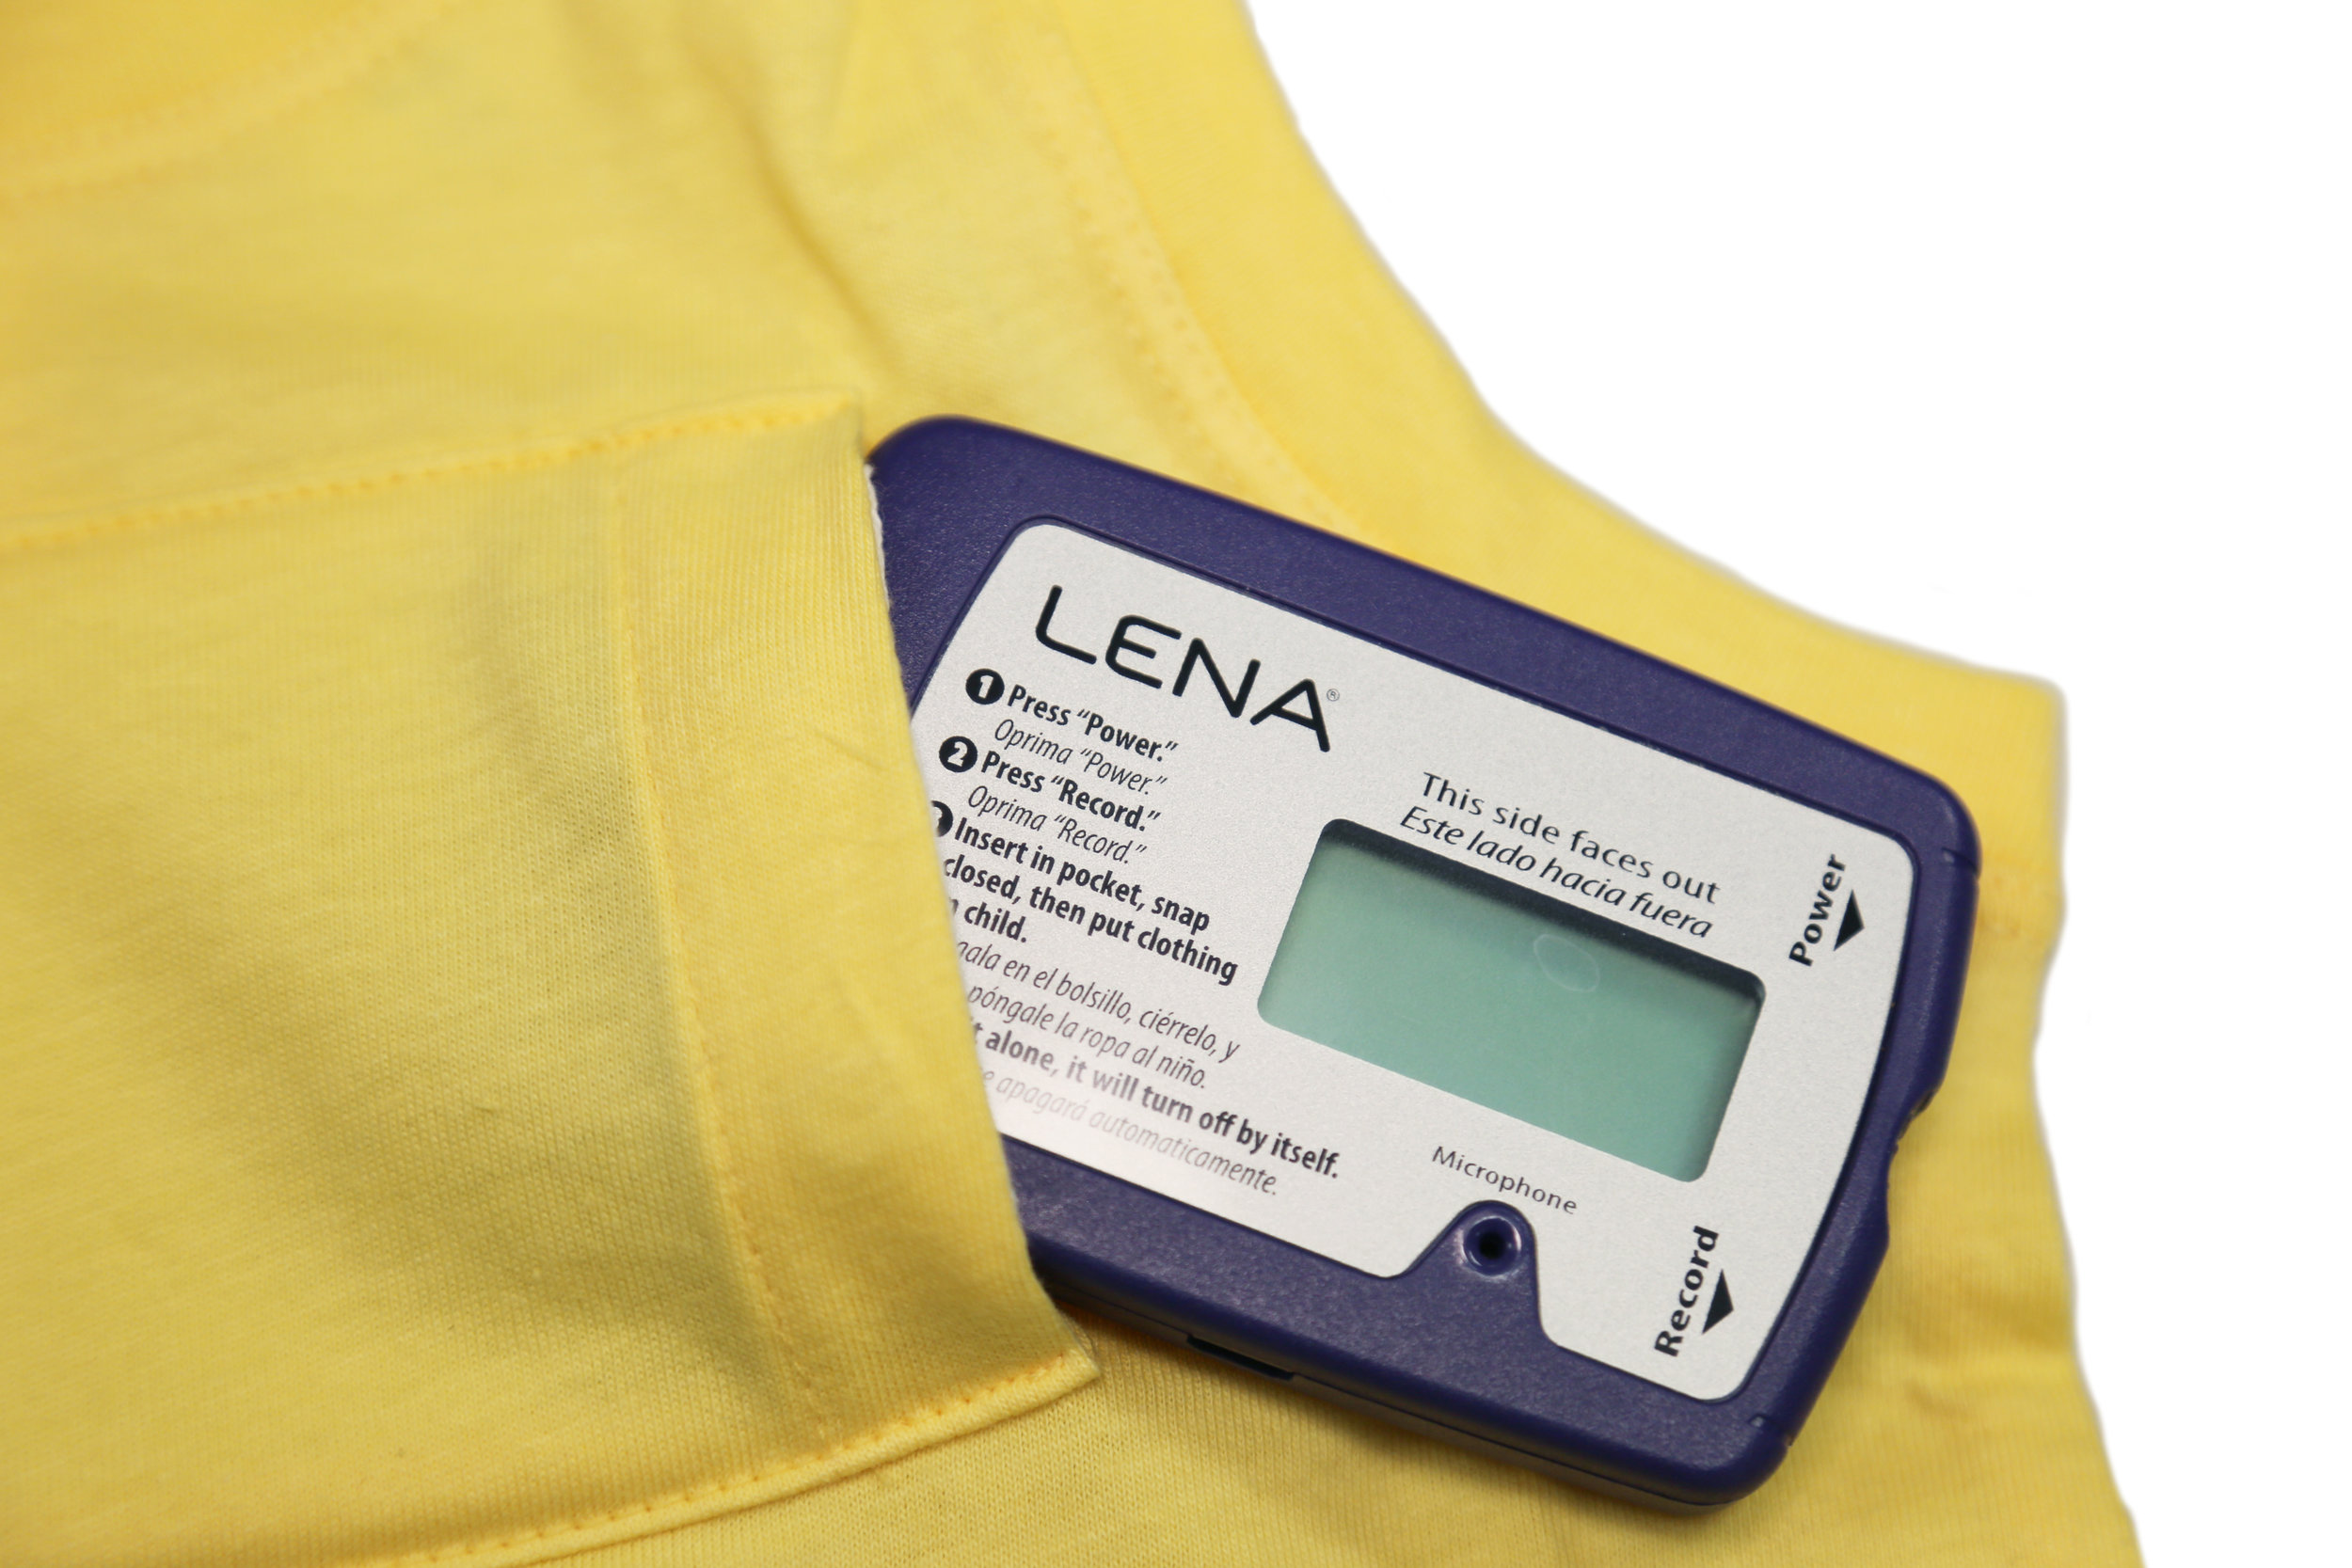 Lena technology - LENA technology is the industry standard for measuring talk with children birth to three, a critical factor in early brain development. LENA technology is used worldwide to measure early language environments for research, intervention, and clinical use.